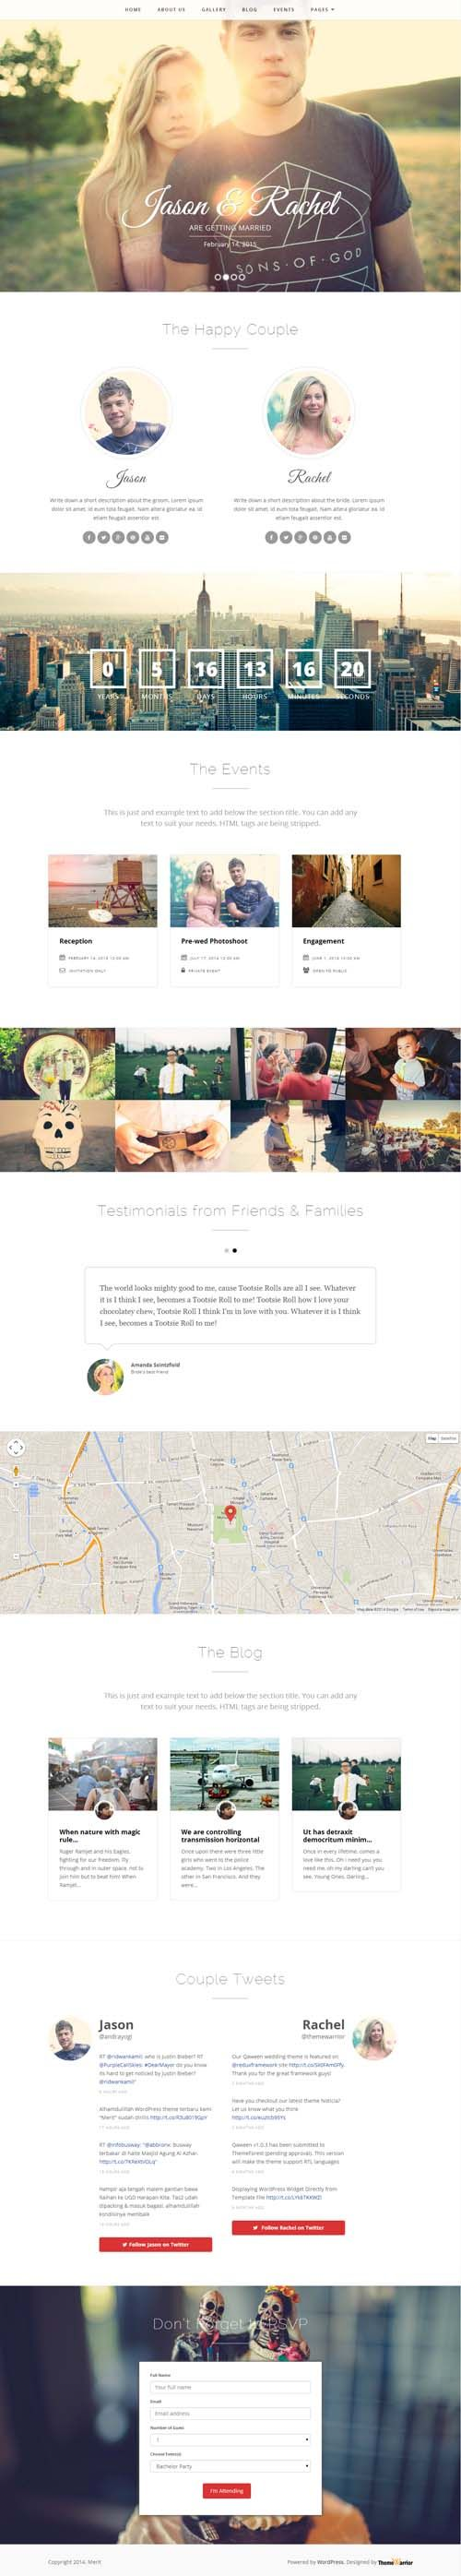 Merit - Responsive WordPress Wedding Theme | Pinterest | Wordpress ...